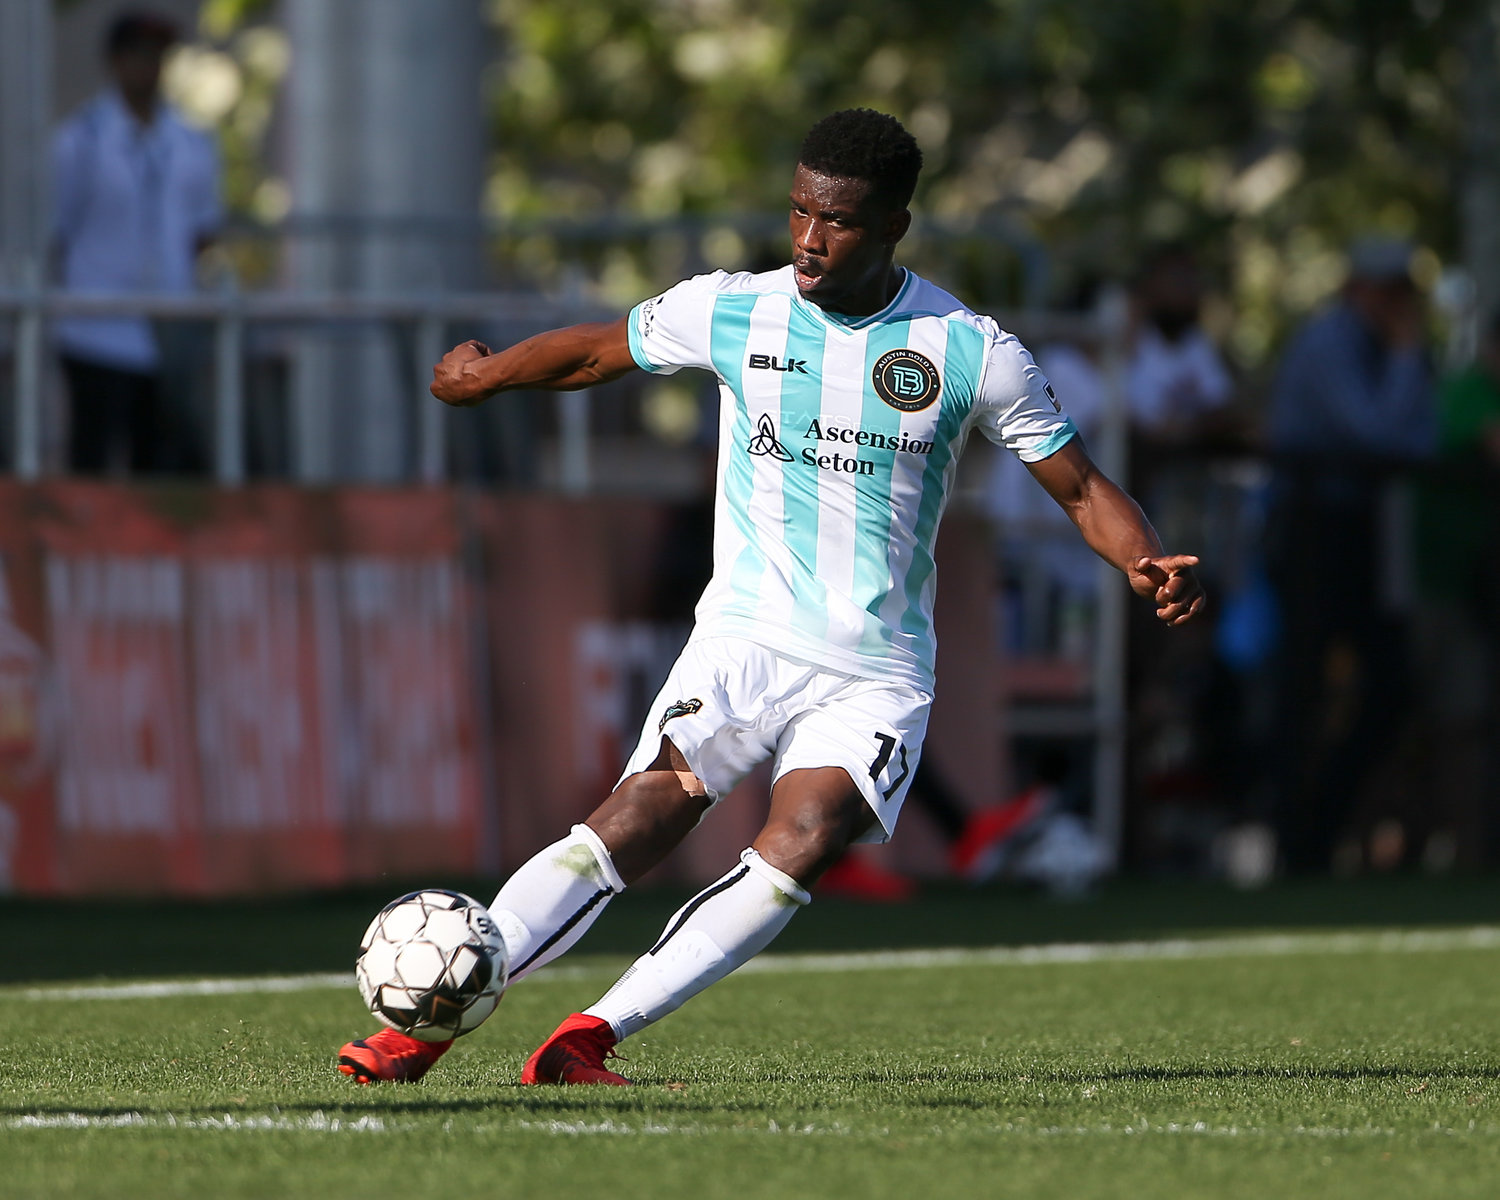 Bold defender Sean McFarlane (17) had a pair of assists in Austin's 2-0 win over Tulsa Roughnecks FC in the U.S. Open Cup on Tuesday night. The Bold host San Antonio FC in the next round on May 29.